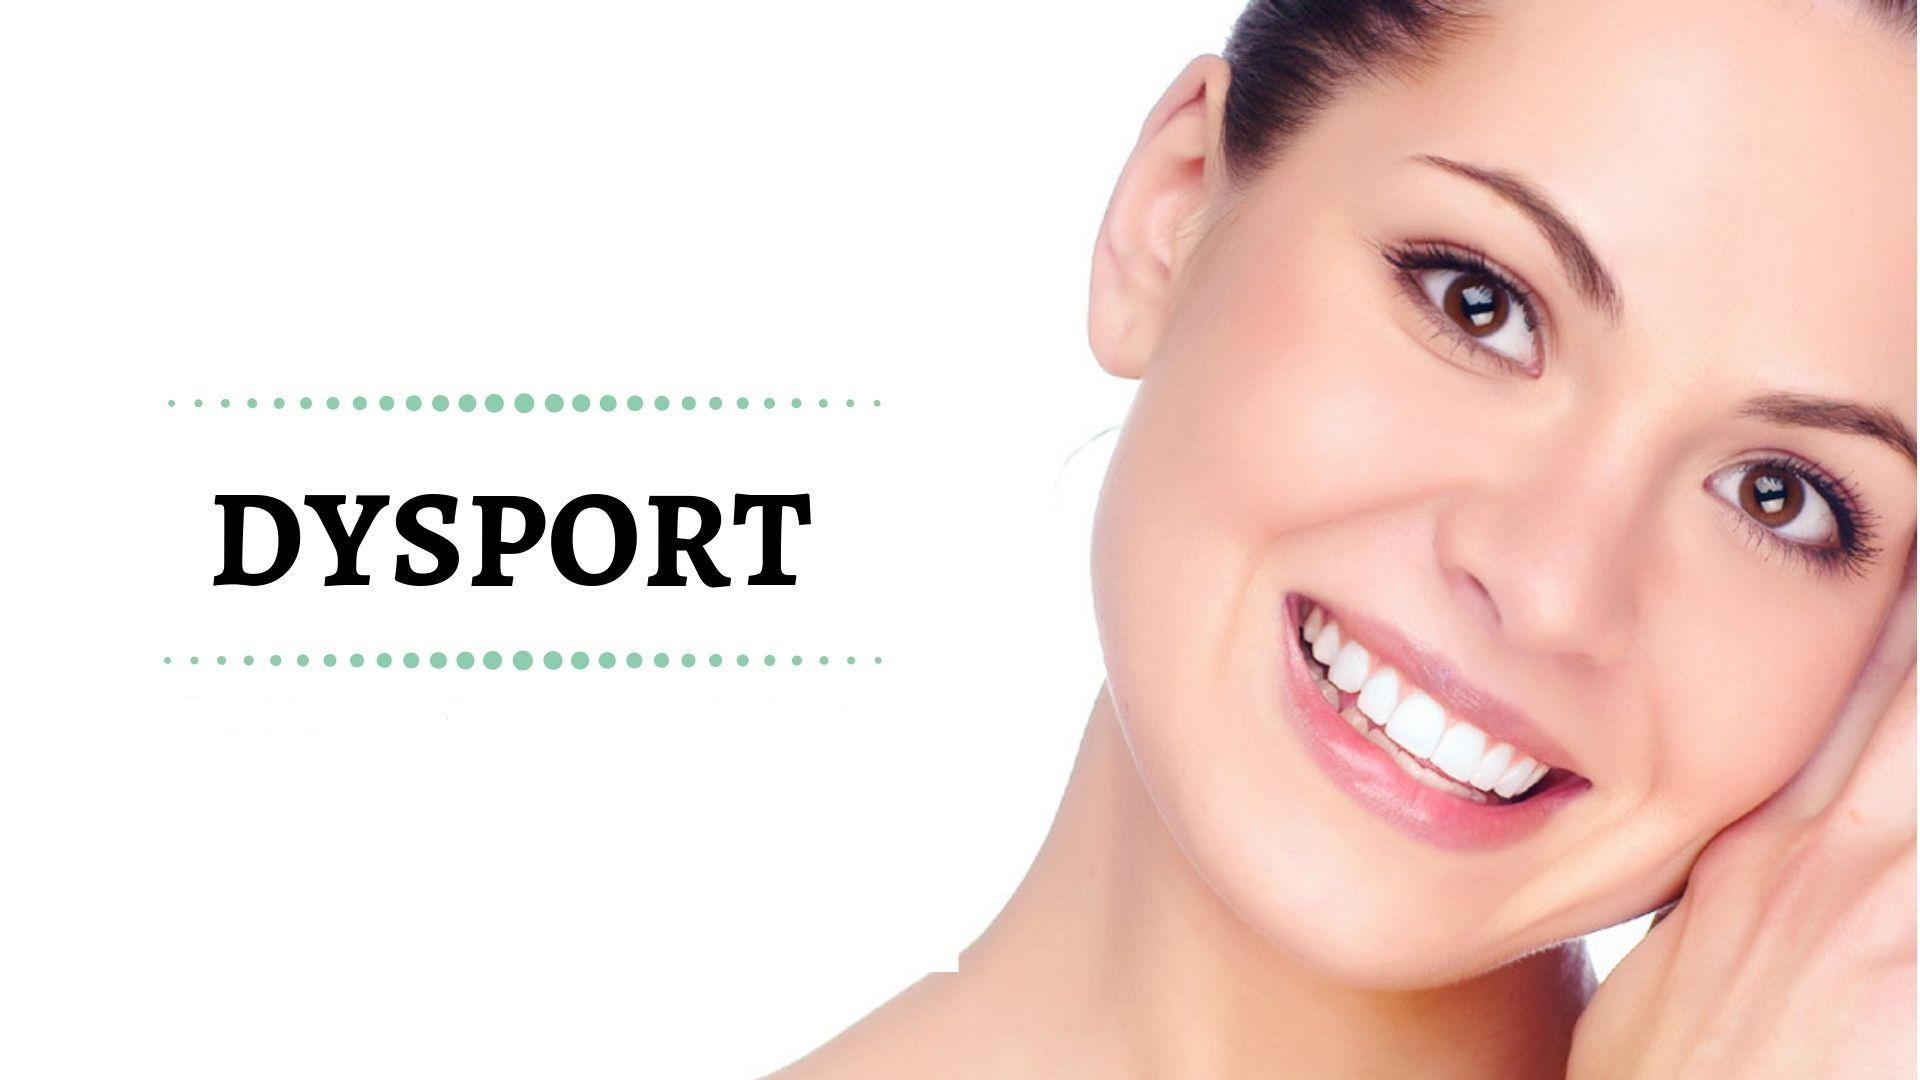 FREE BOTOX ALTERNATIVE Dysport